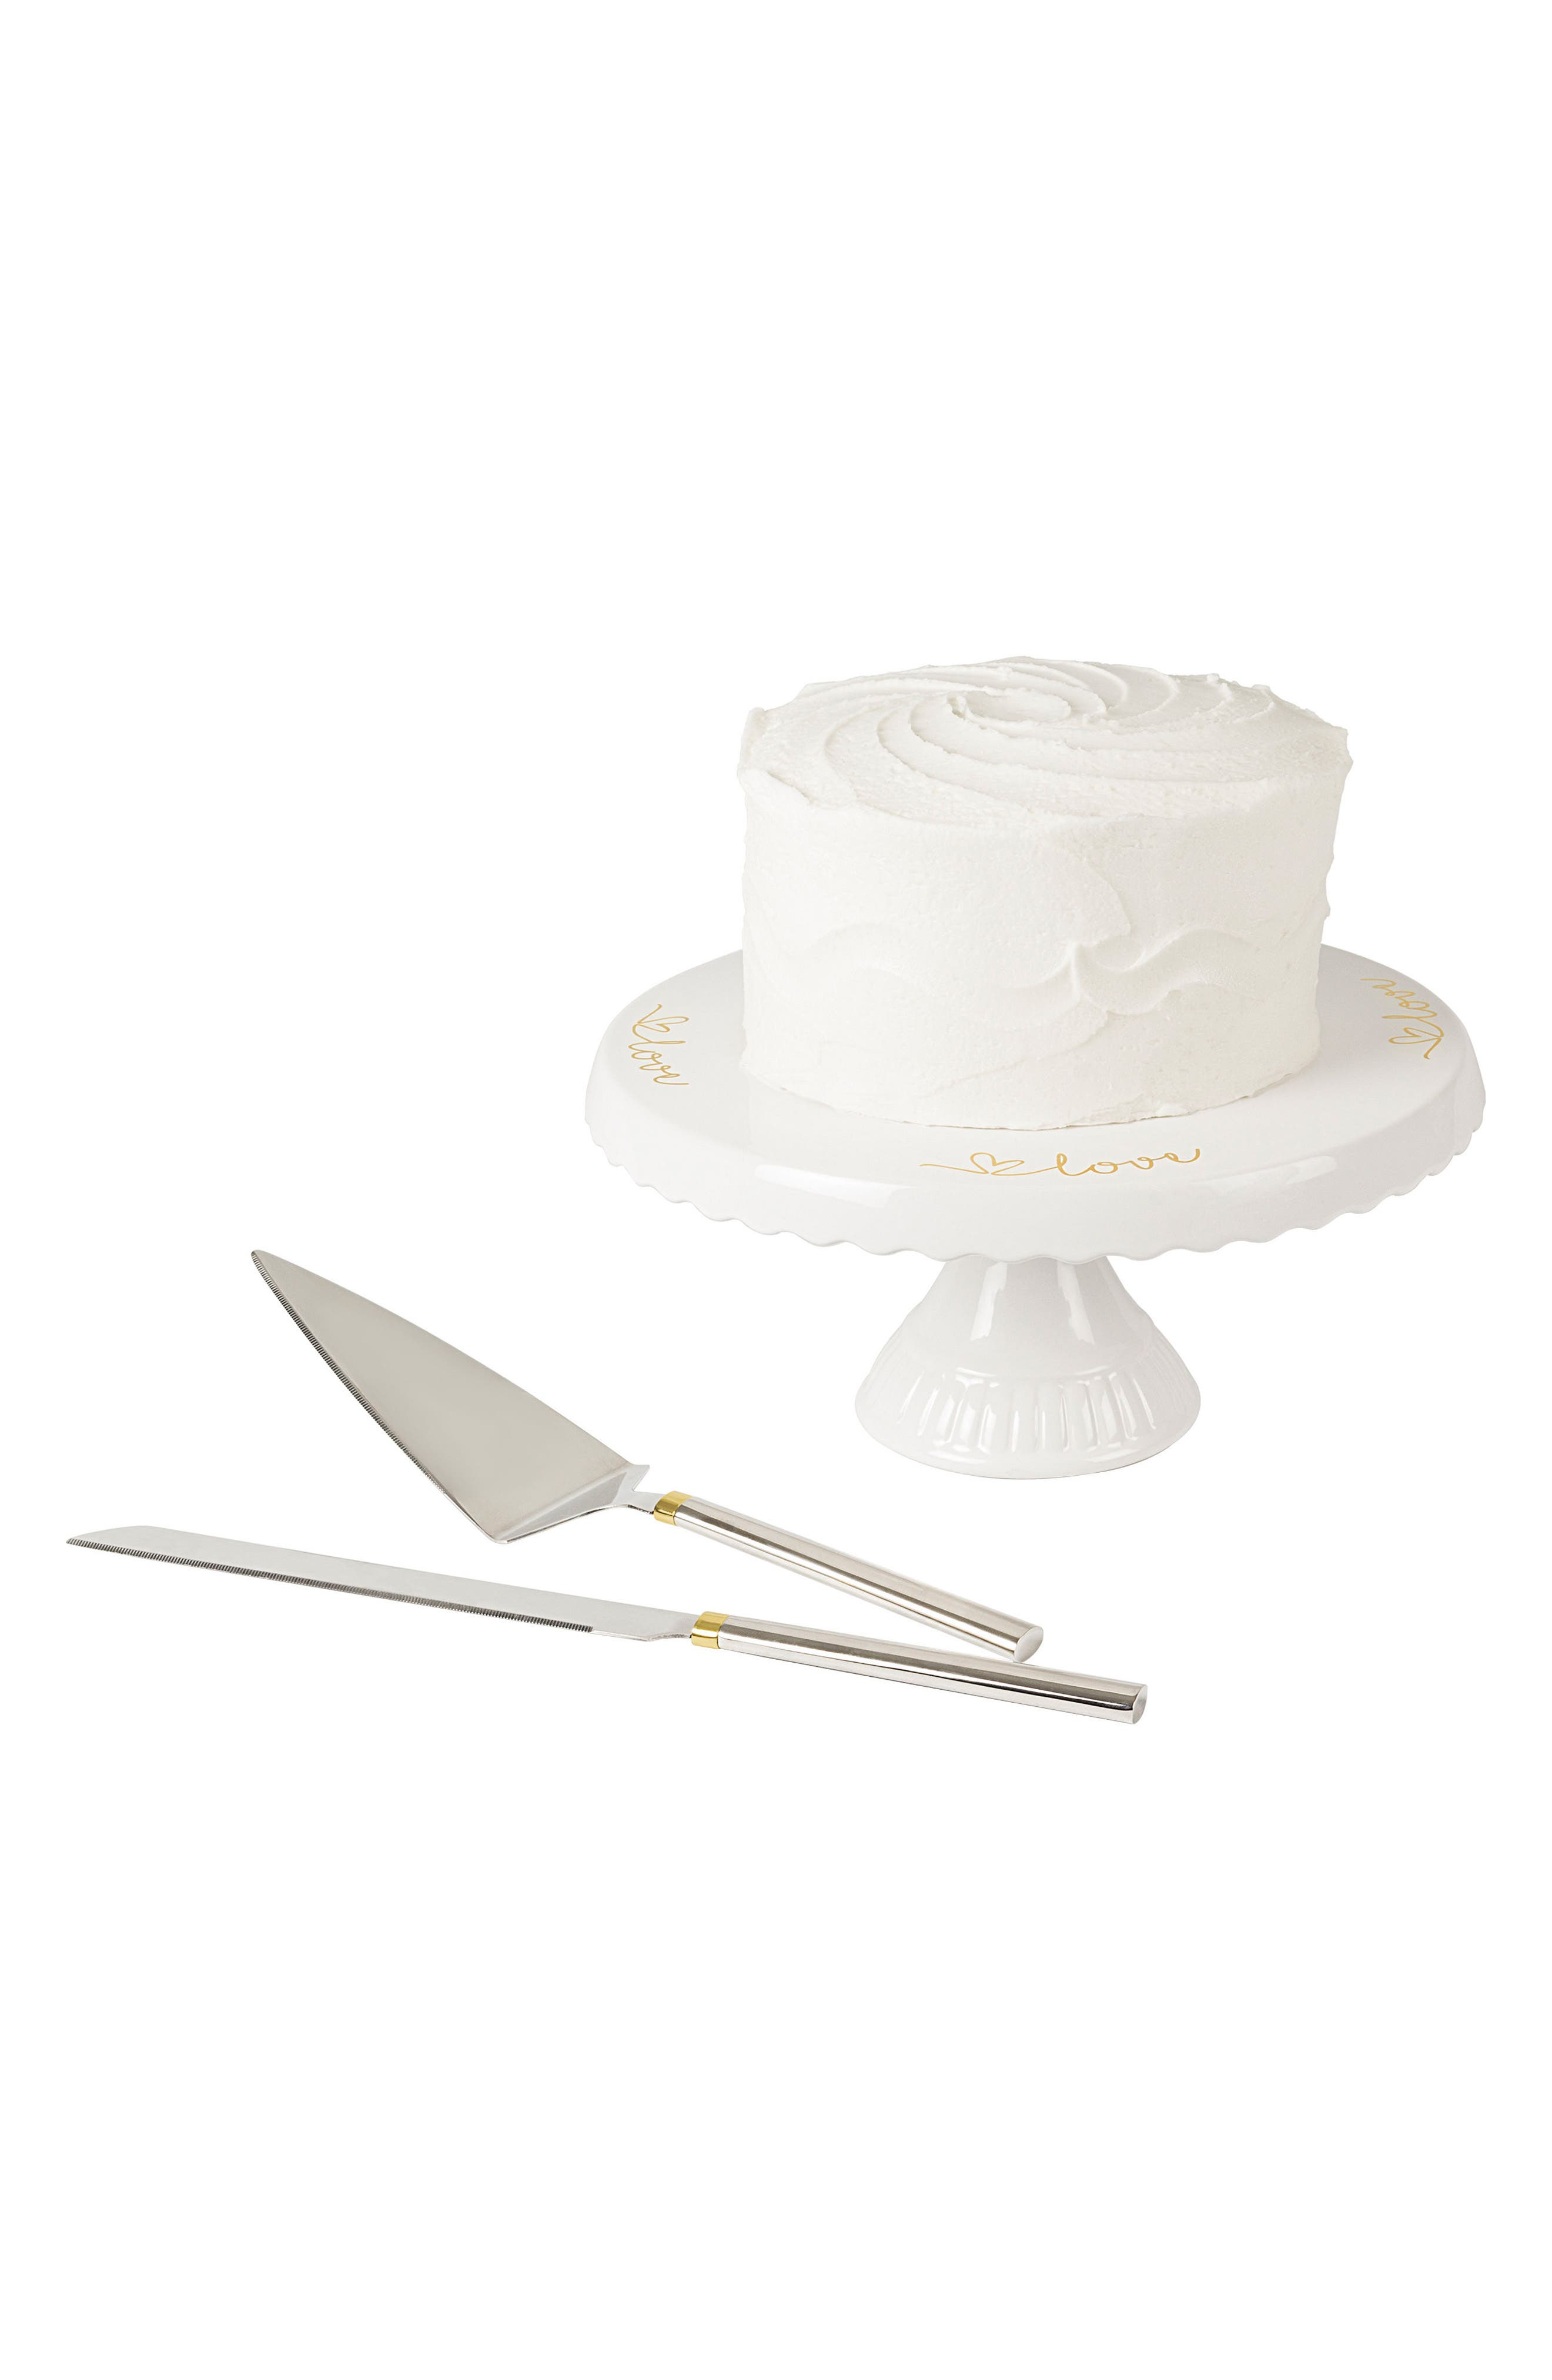 Love Monogram Cake Stand & Server Set,                         Main,                         color,